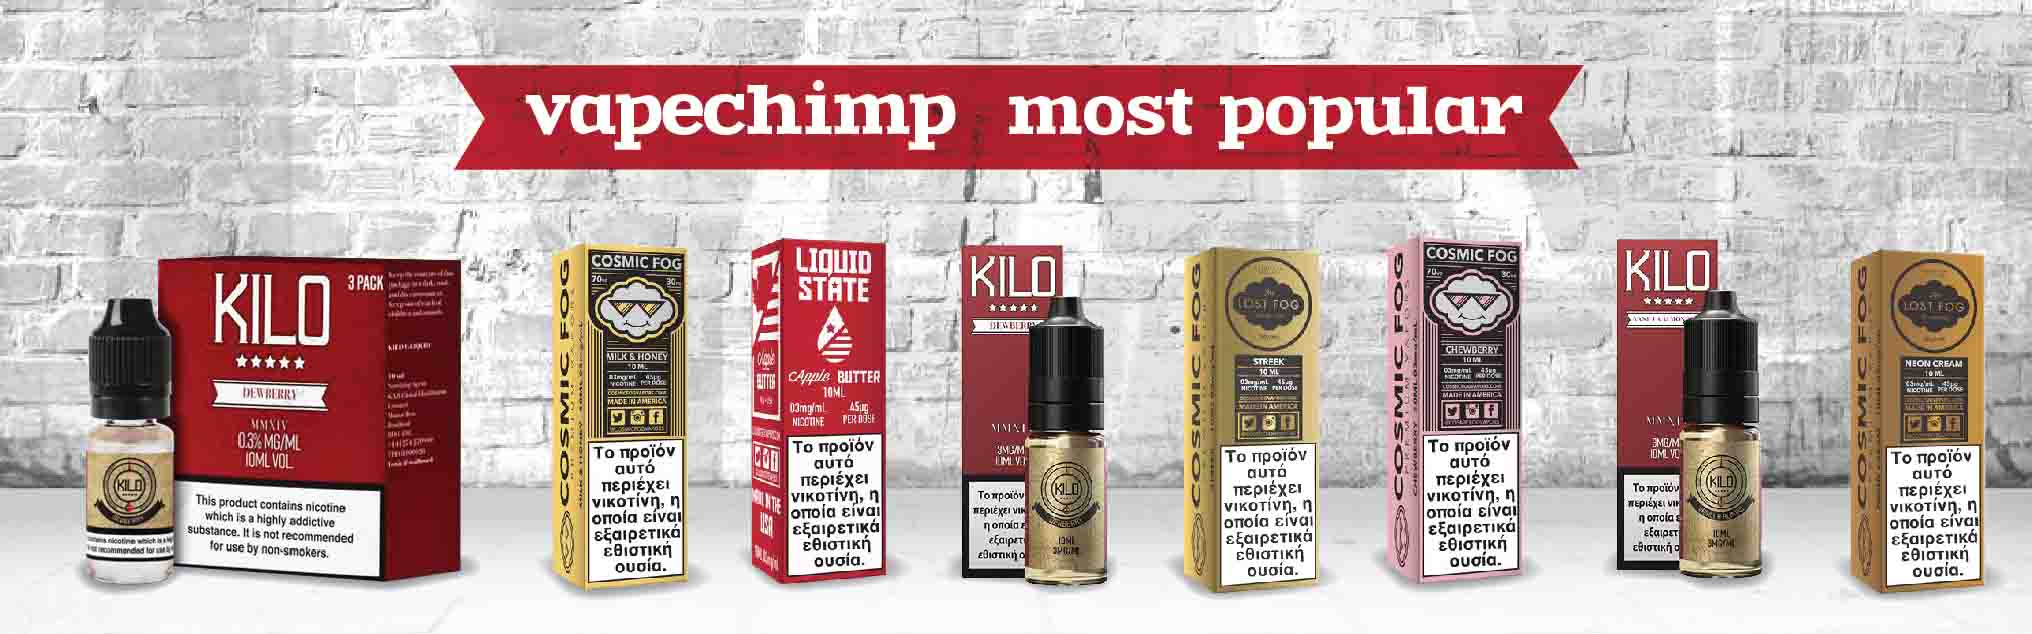 Vapechimp Most Popular E-Liquids COSMIC FOG KILO BEARD VAPE LIQUID SATE WHOLESALE GREECE CYPRUS